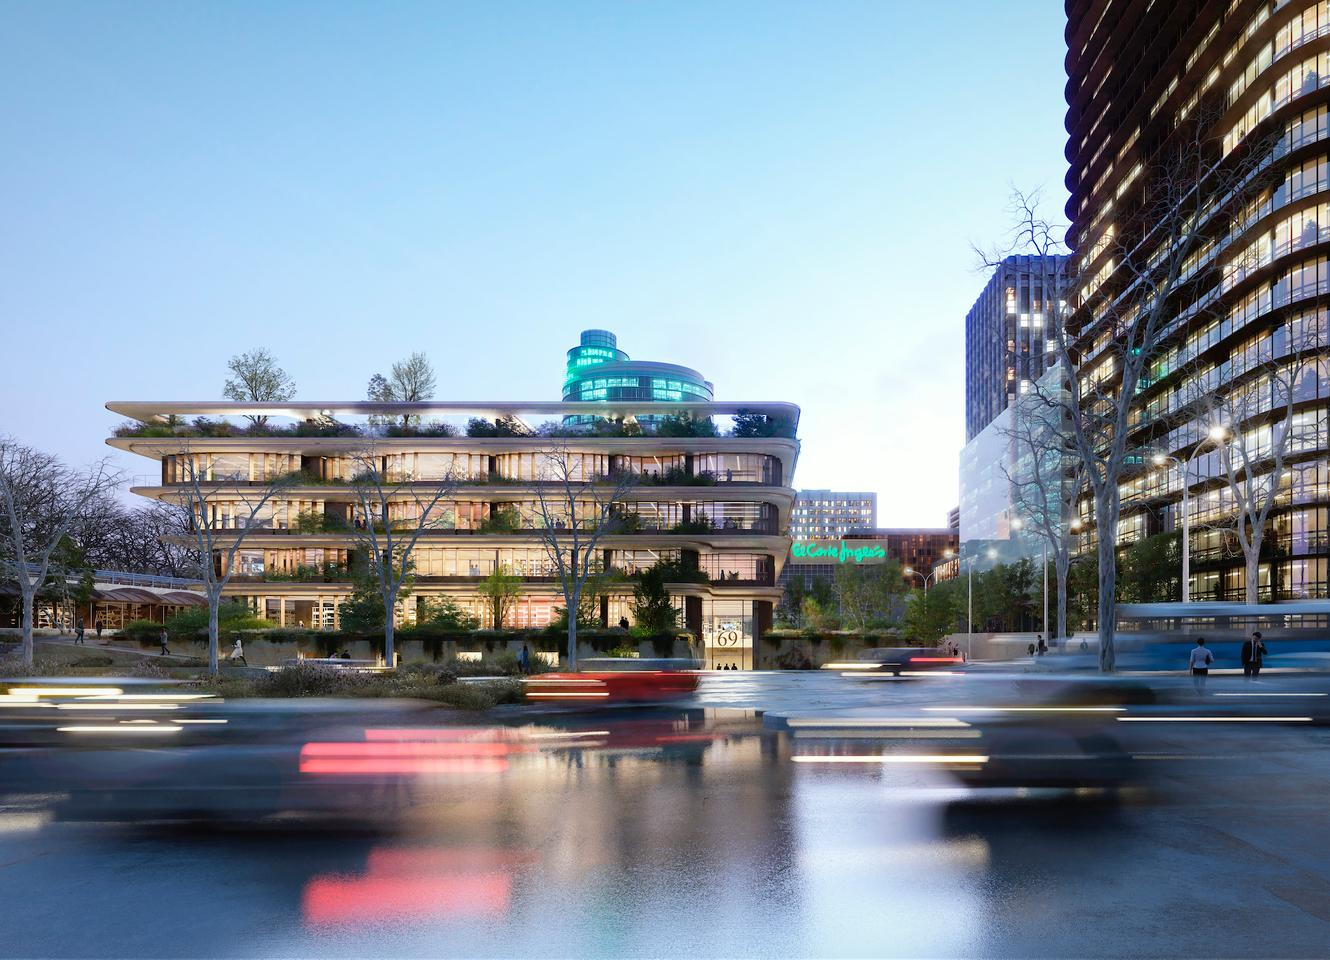 Castellana 69's exterior will be feature significant greenery, which will help shade the office spaces within